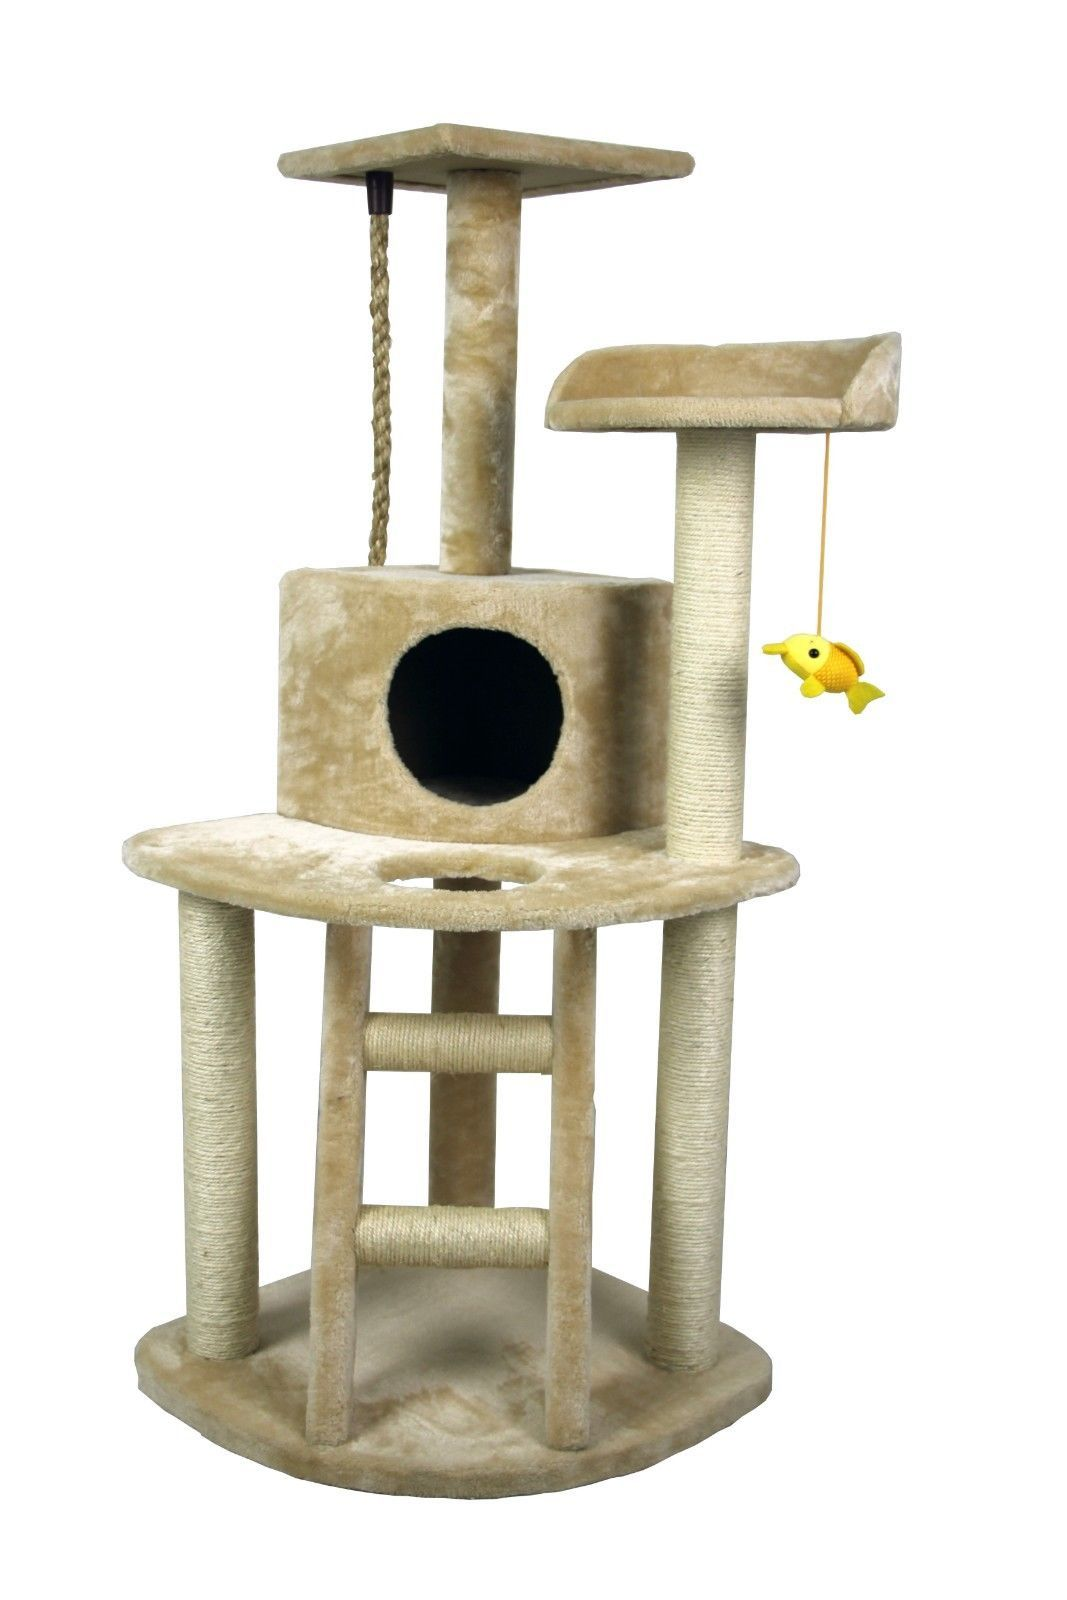 hiding cat tree 48 play house condo furniture bed tower. Black Bedroom Furniture Sets. Home Design Ideas